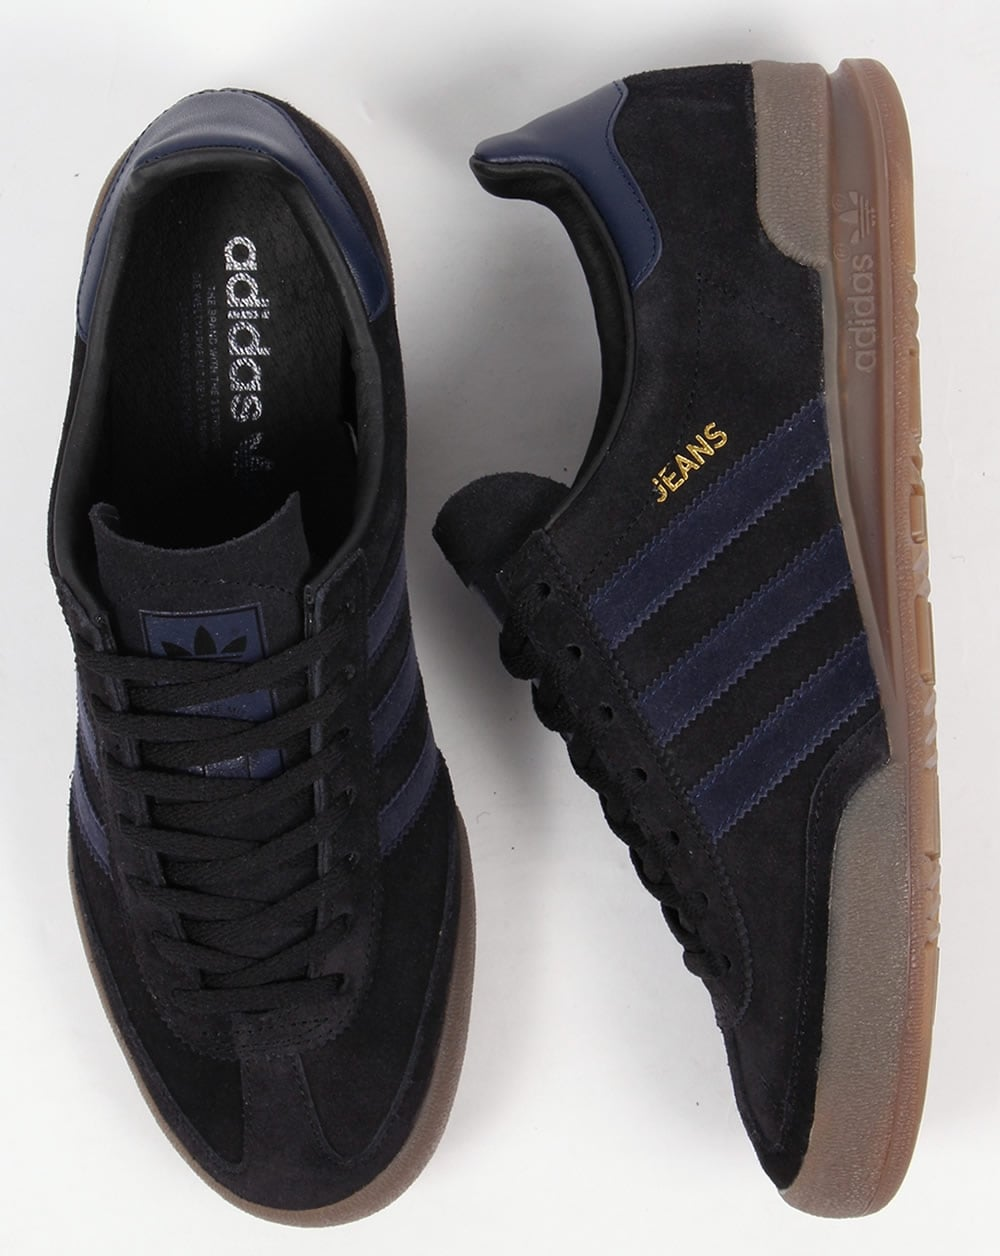 black adidas jeans trainers men